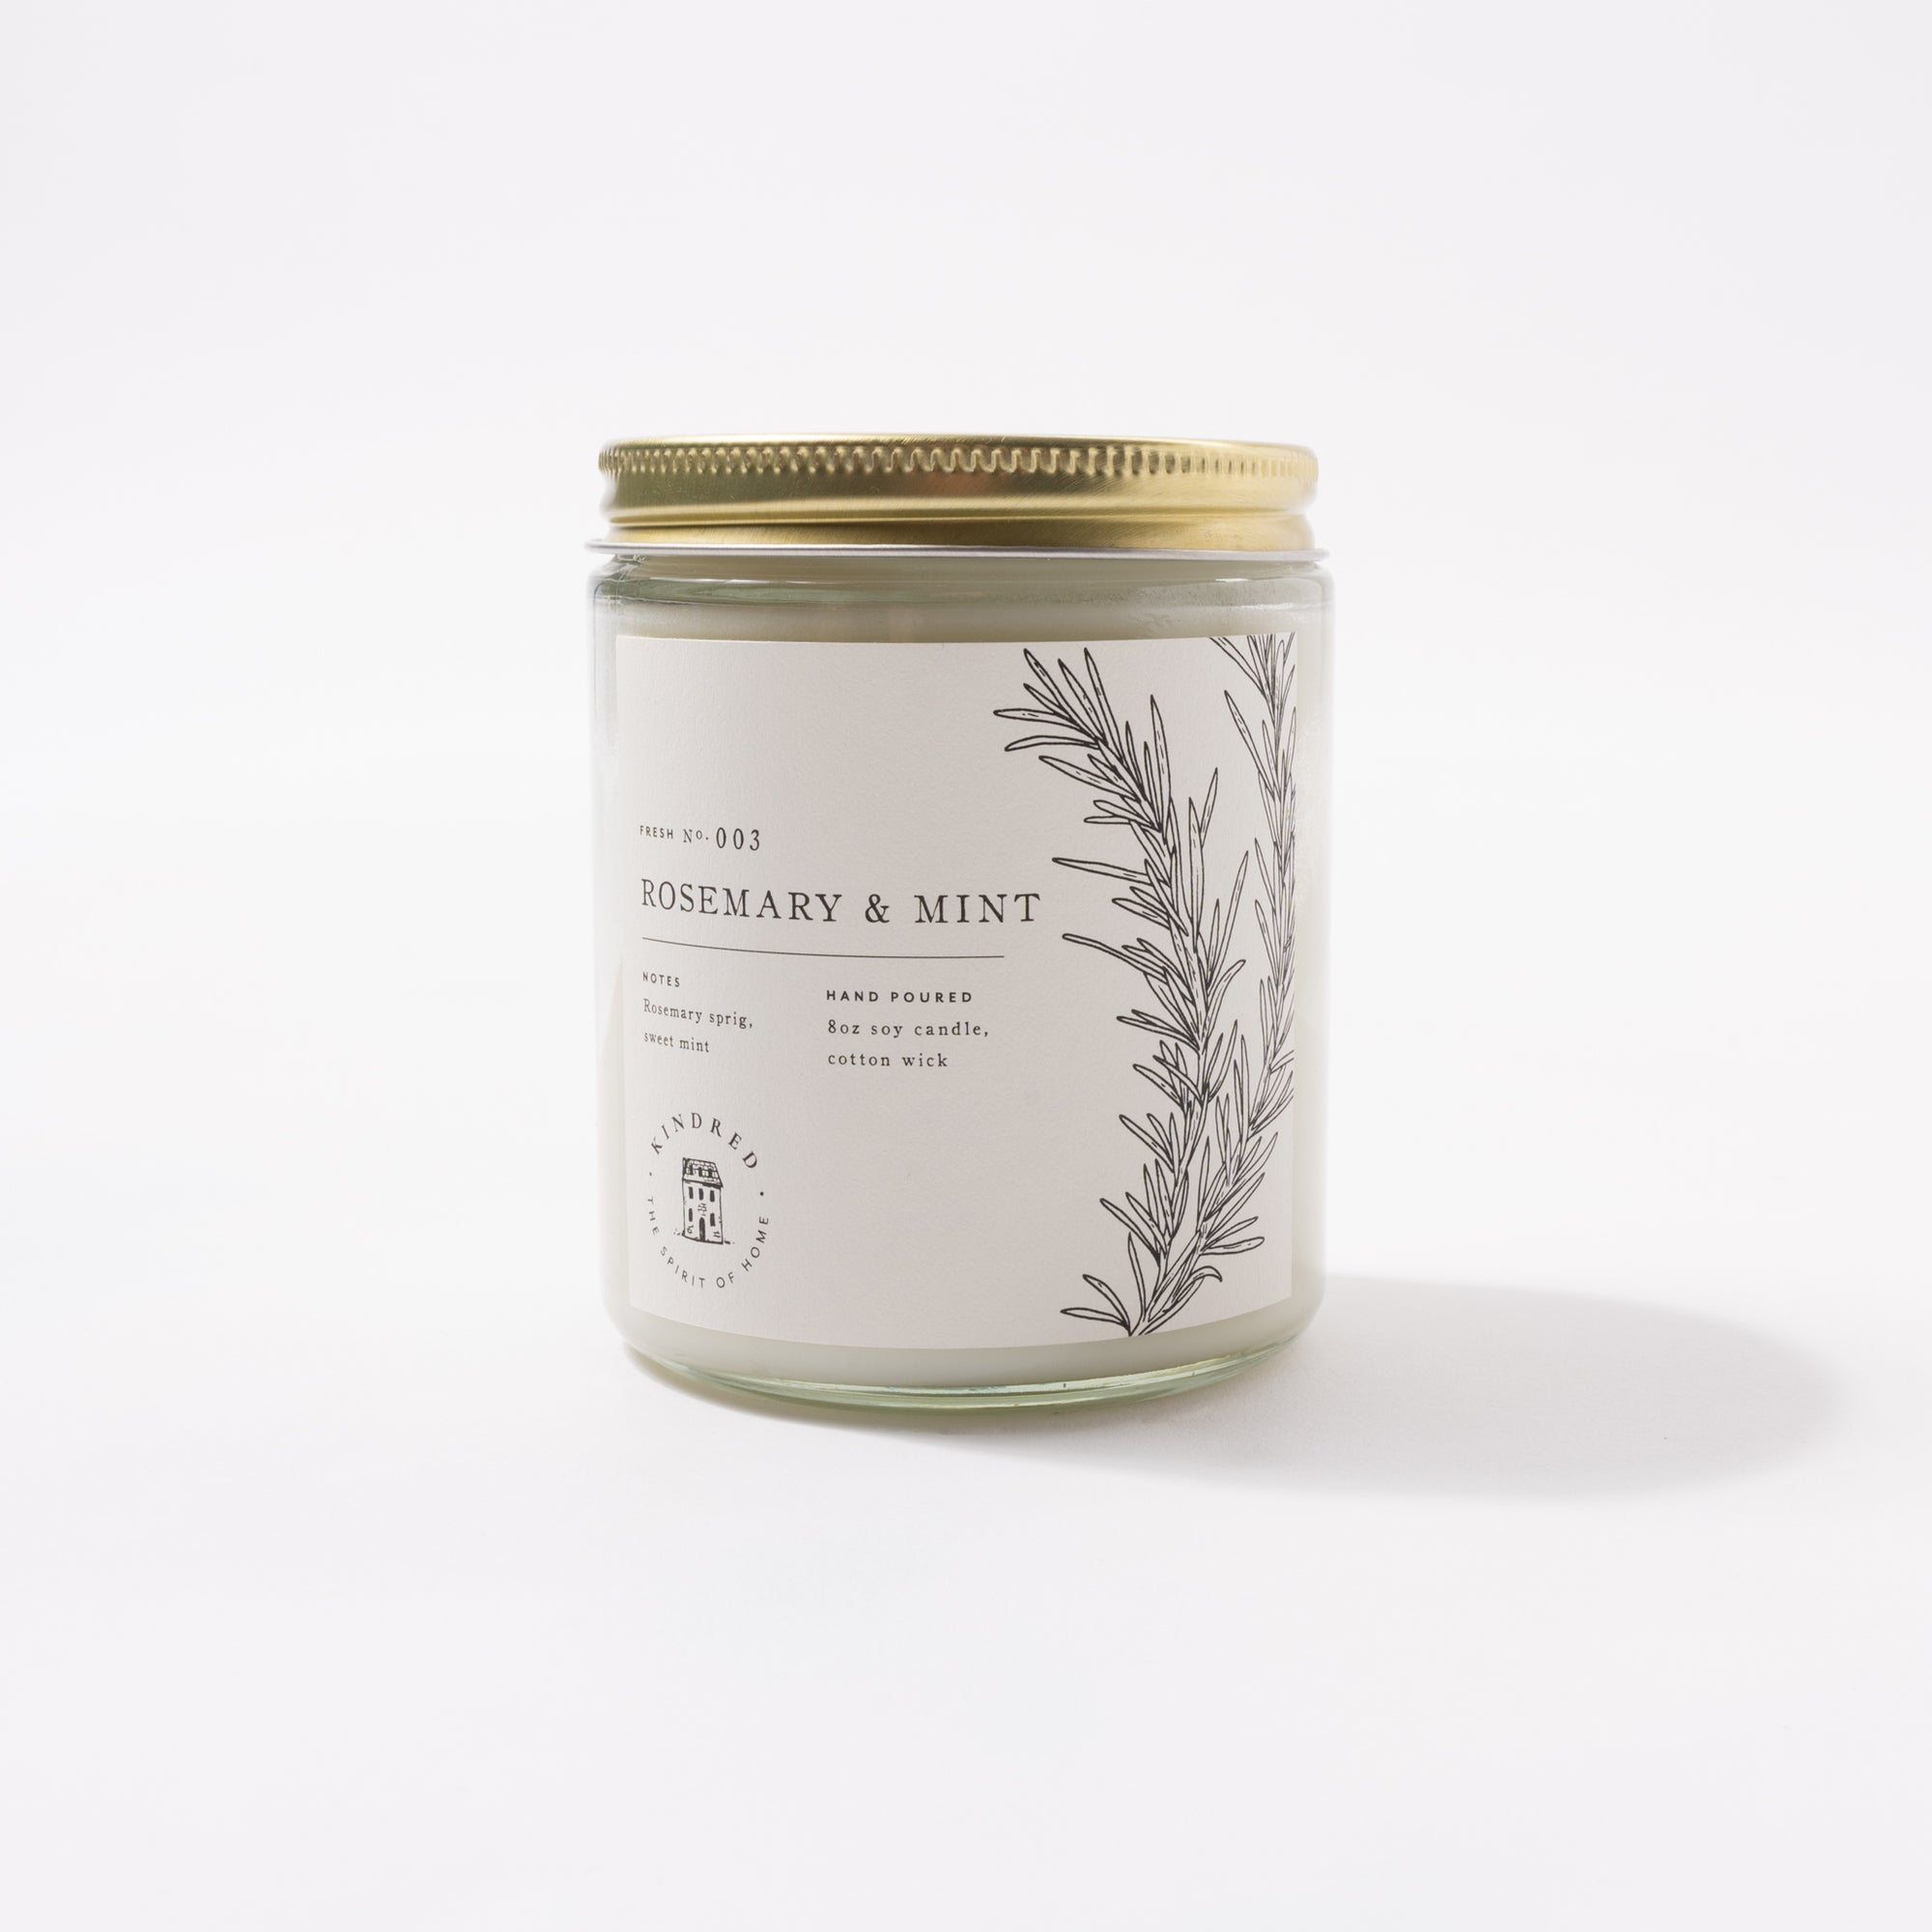 Rosemary & Mint Classic Candle